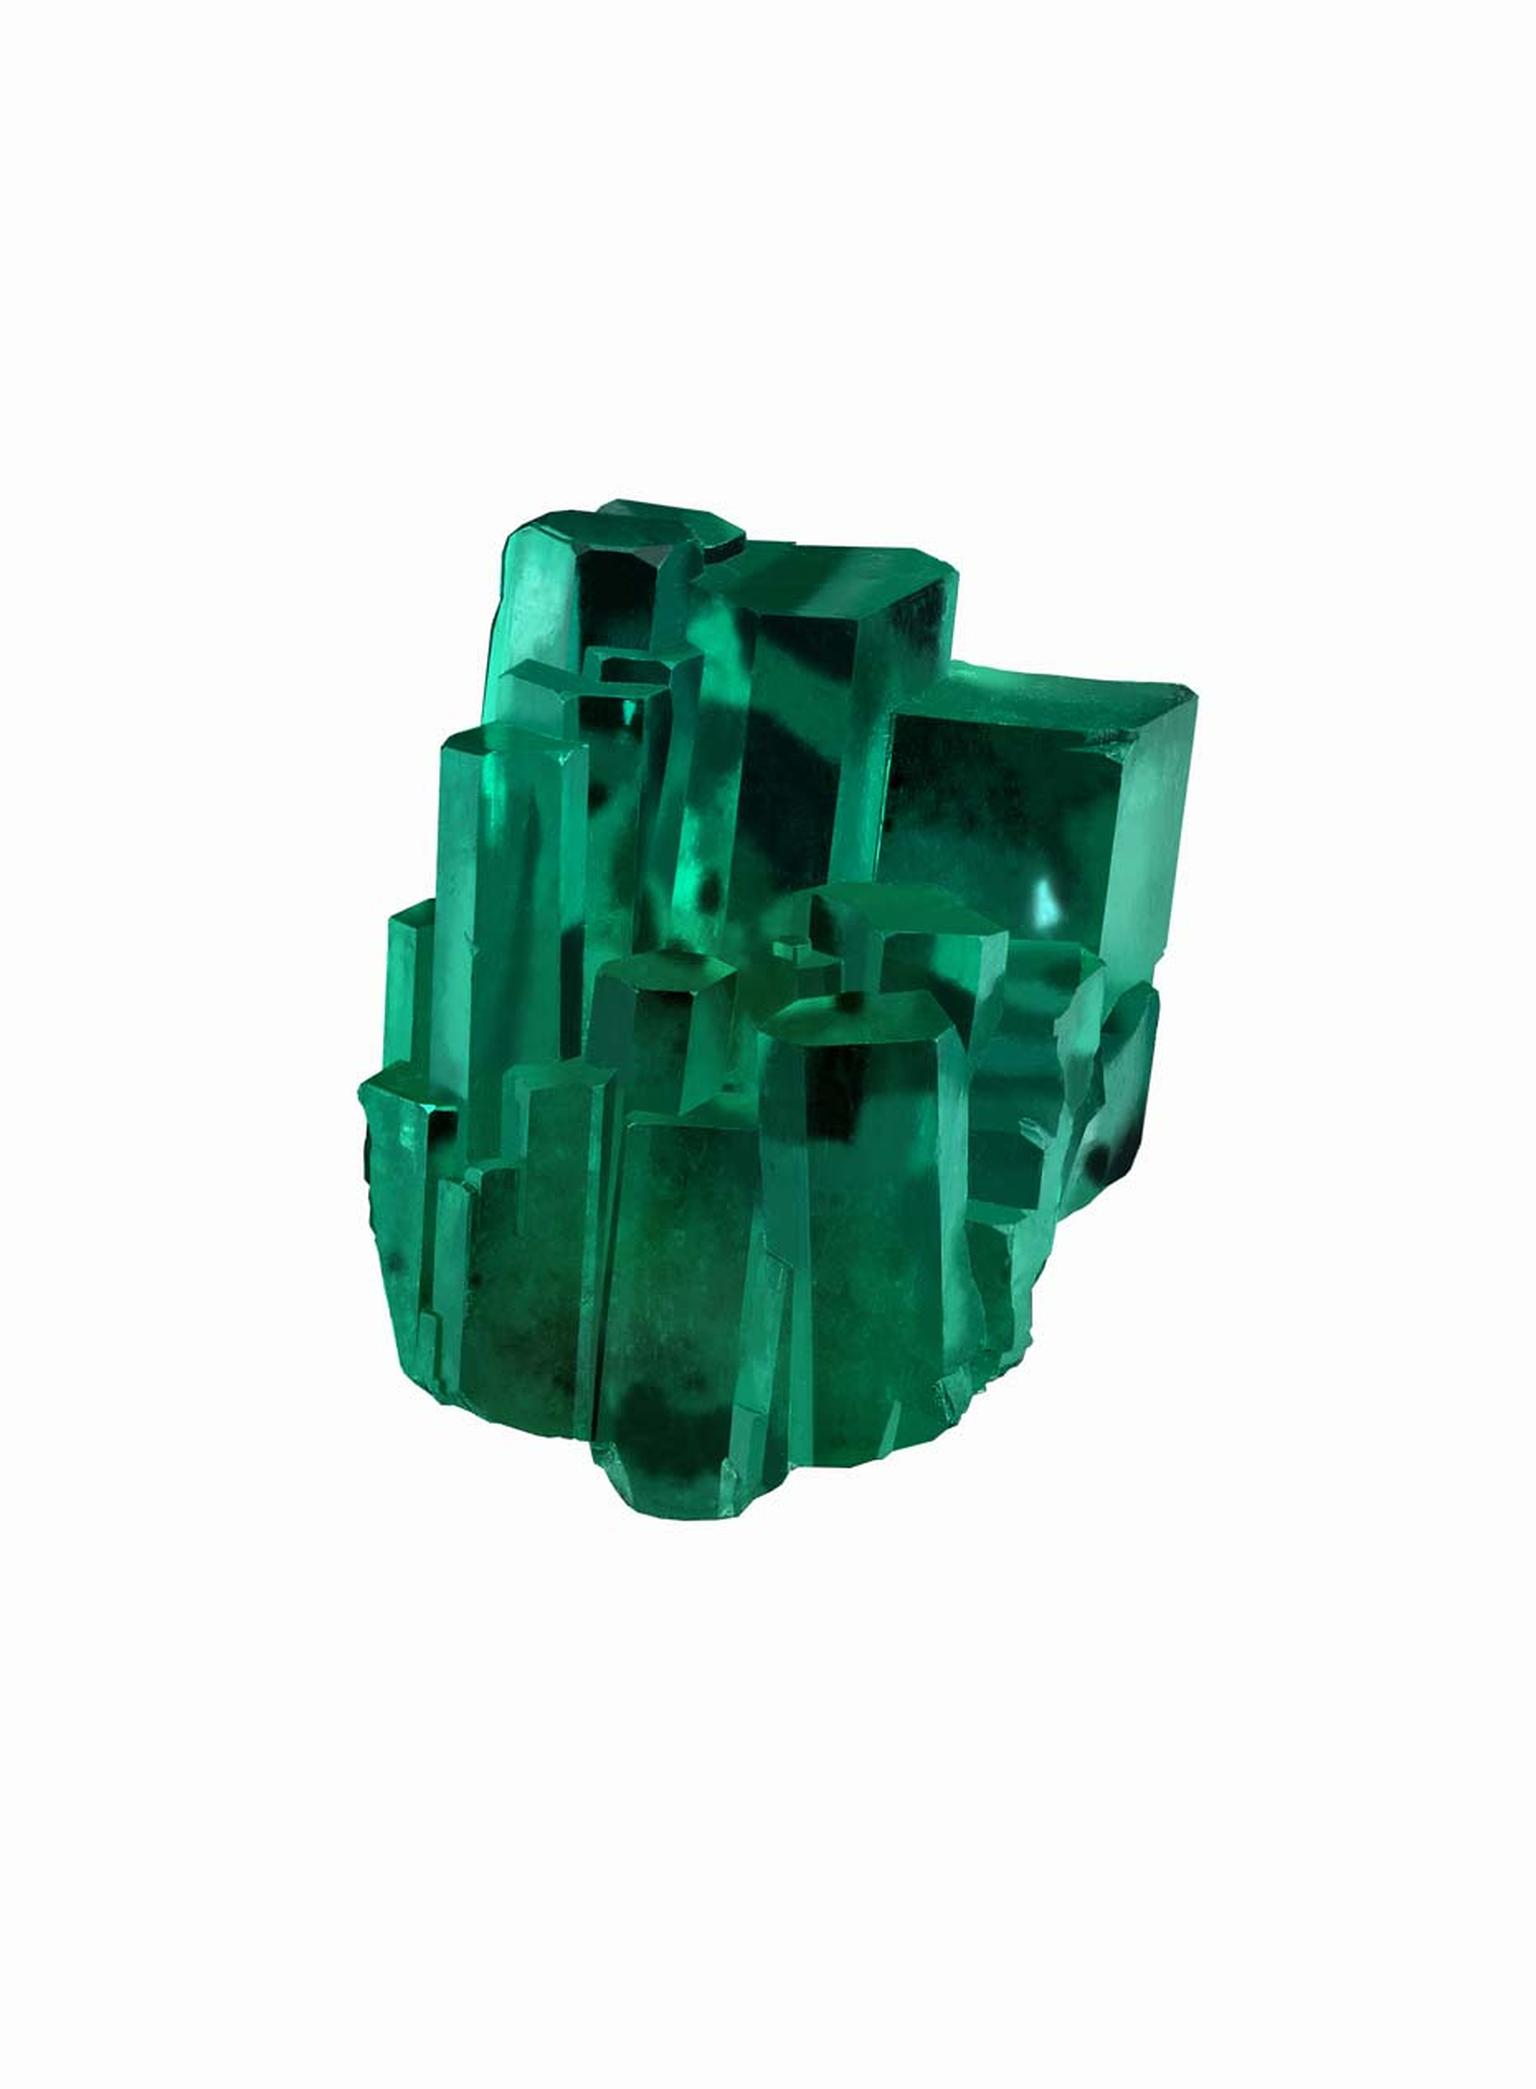 The 39.01ct Emerald City is a rare and unique natural formation from the mines in Colombia with vivid and intense green hexagonal prisms